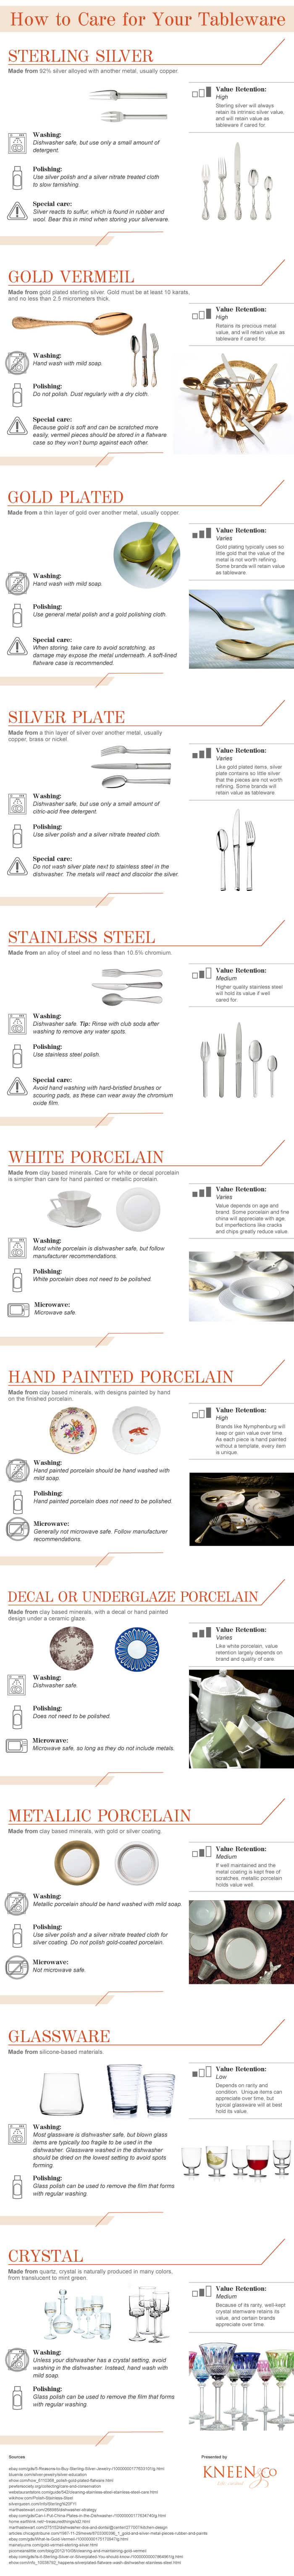 tableware-care-guide-by-kneenandco (1)